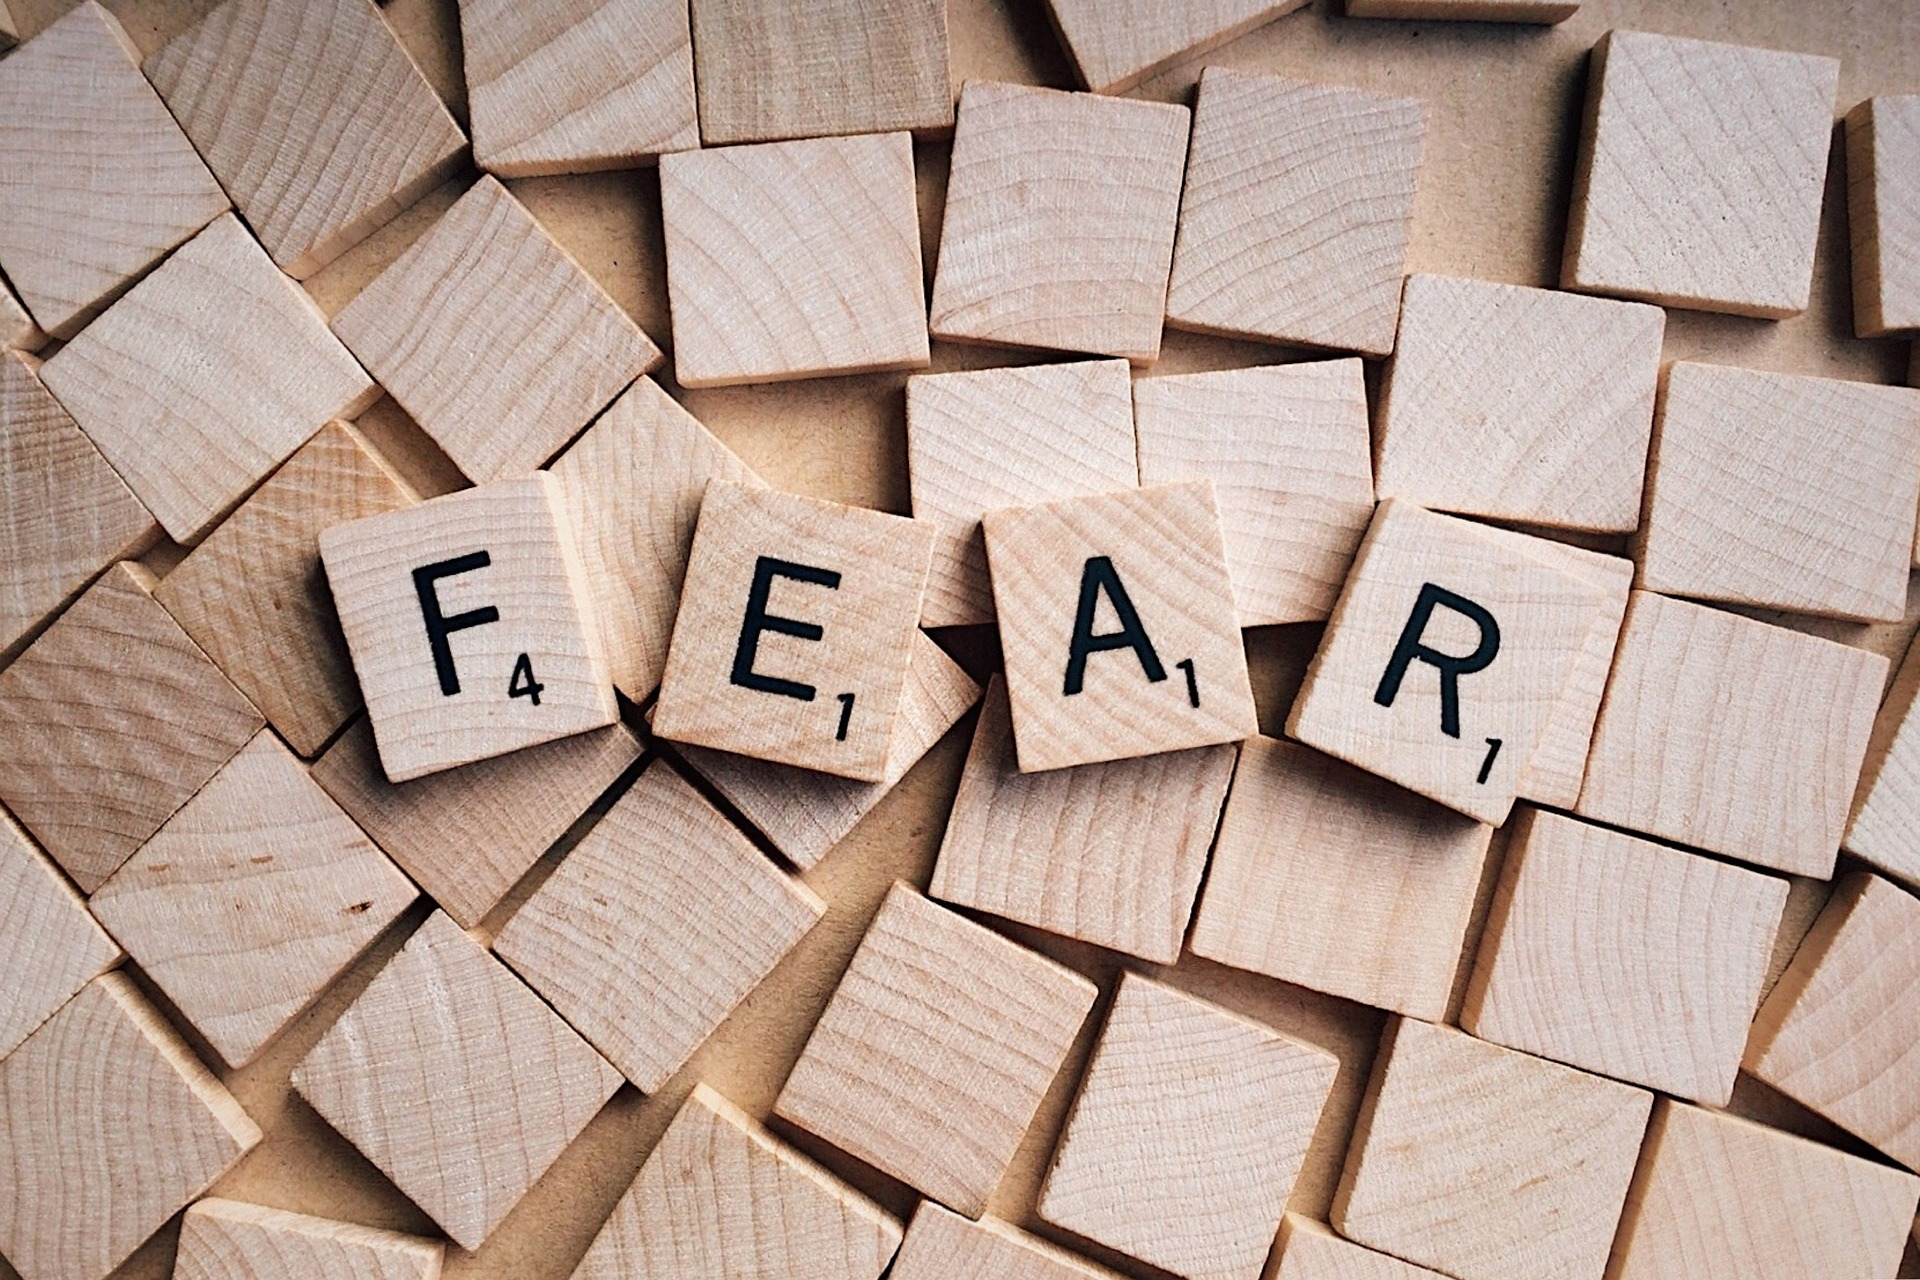 How I learned to embrace fear